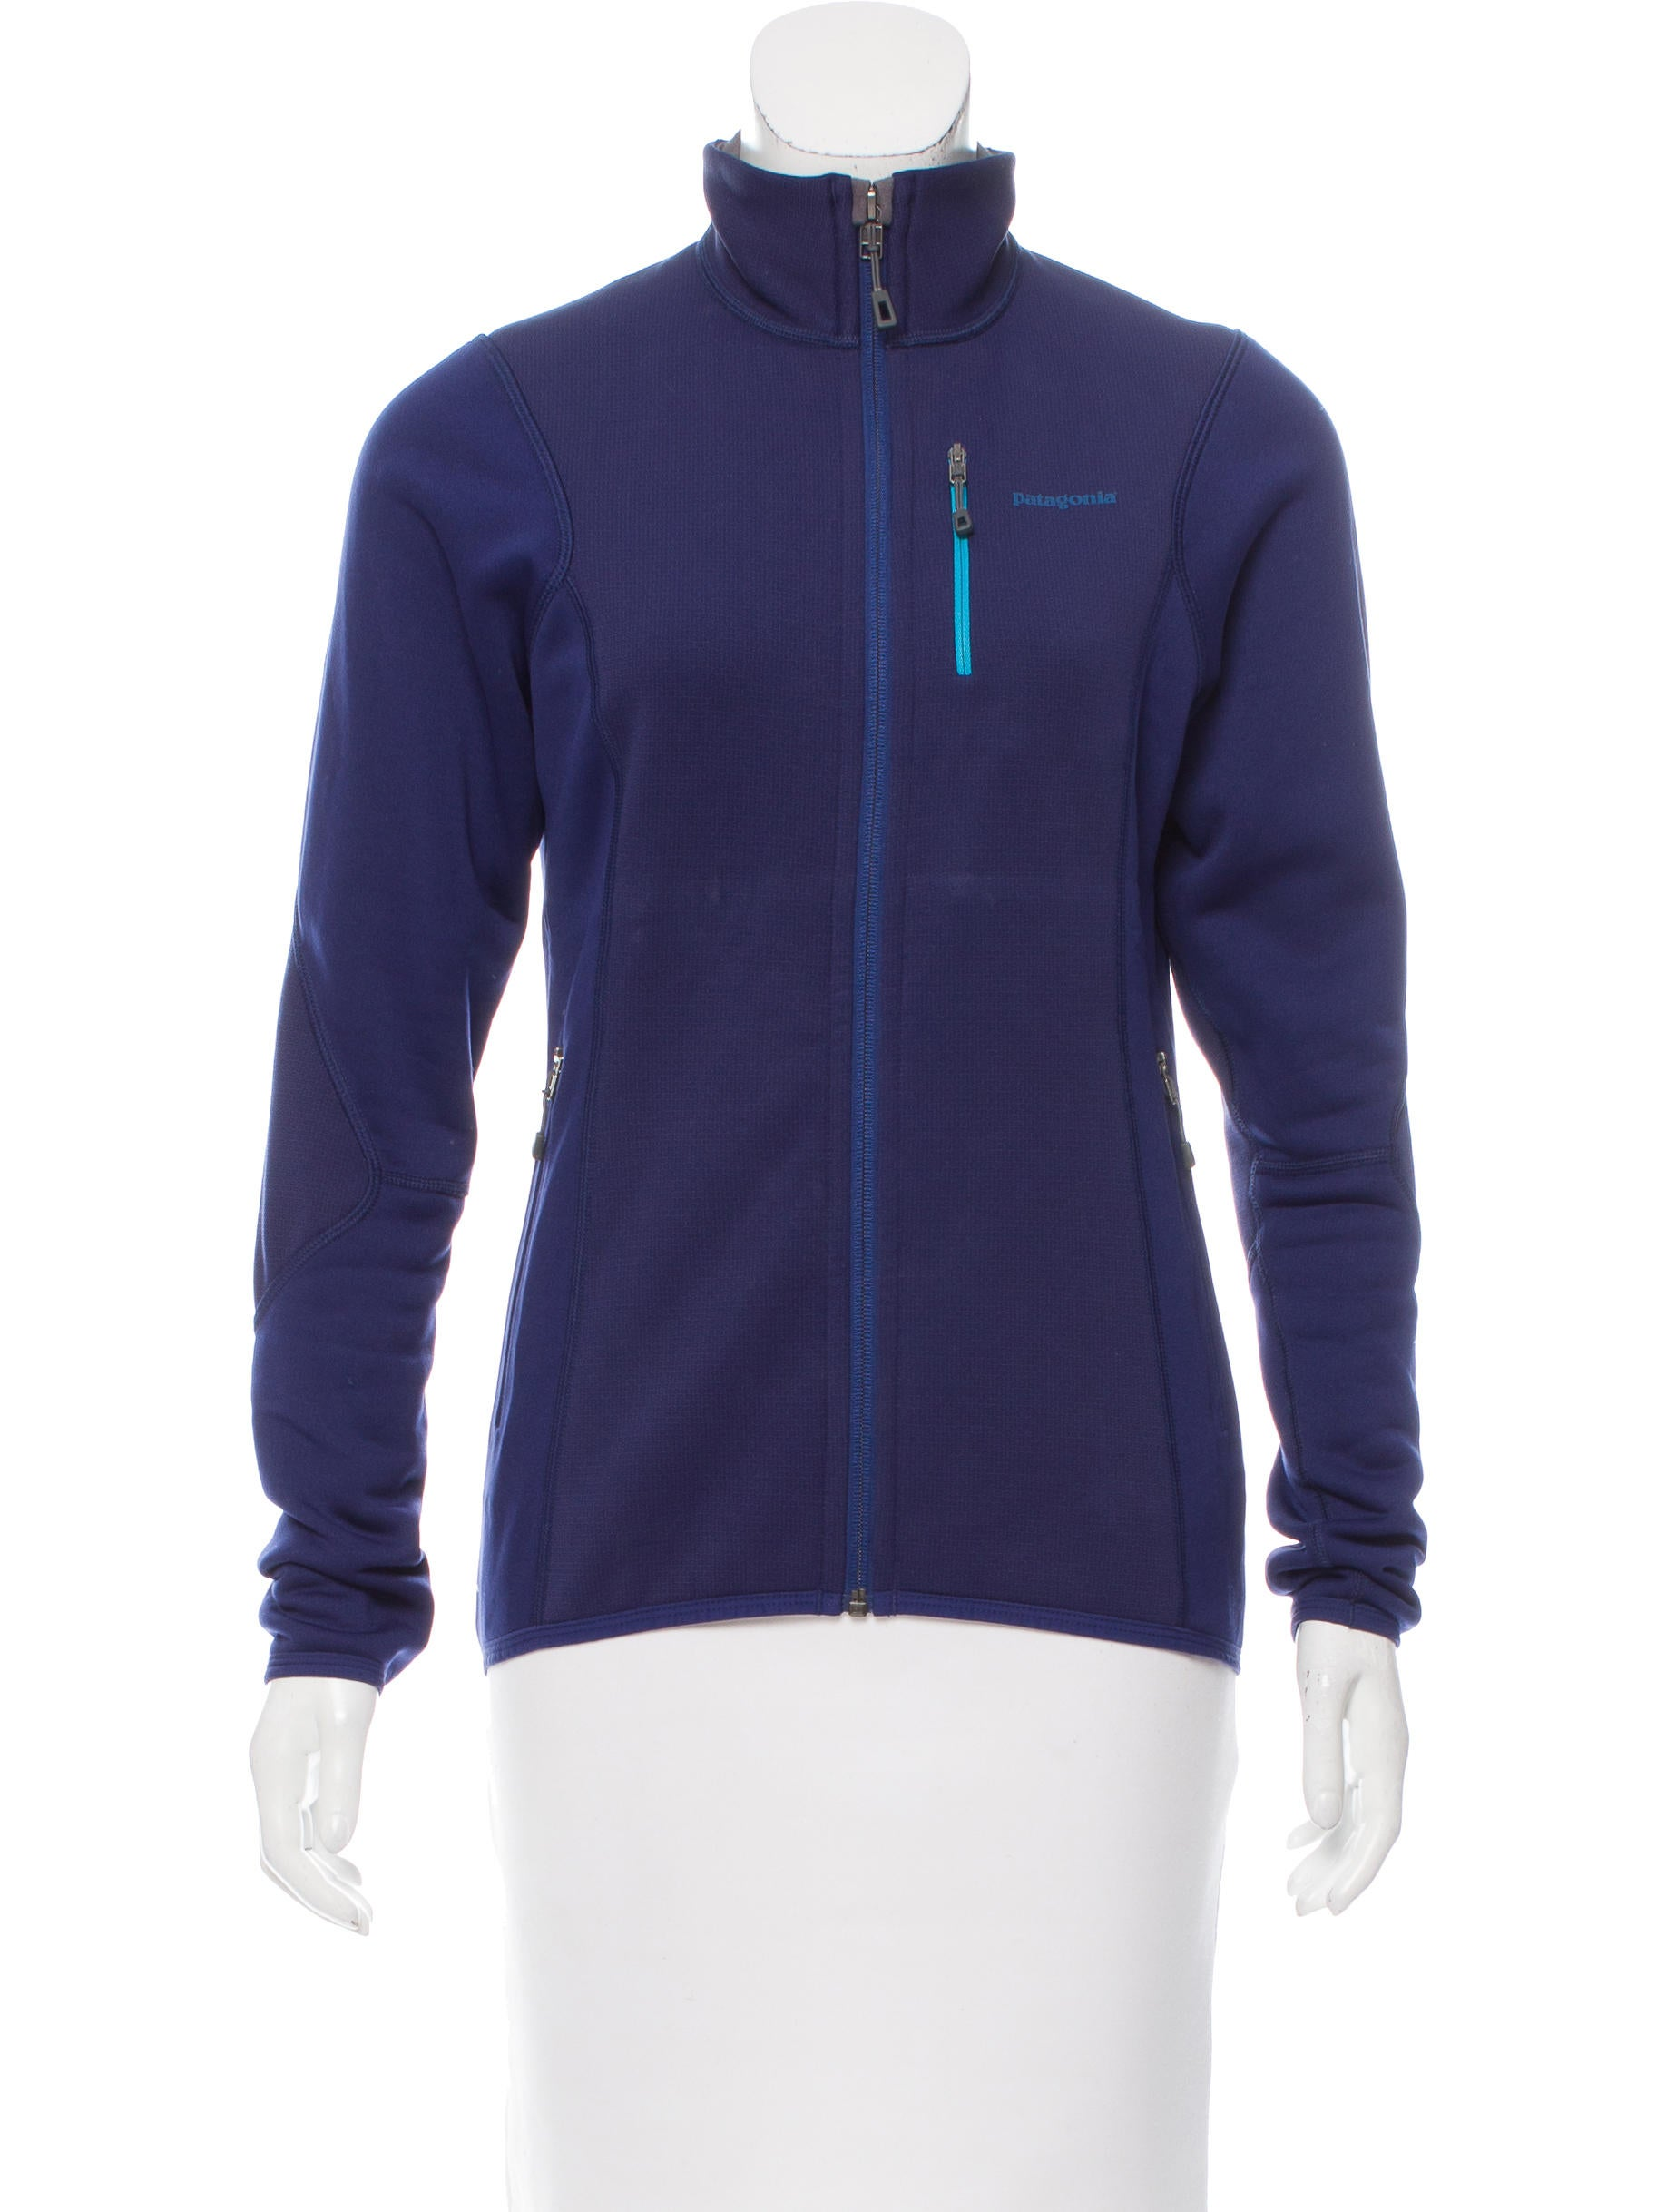 Patagonia Lightweight Fleece Lined Jacket Clothing